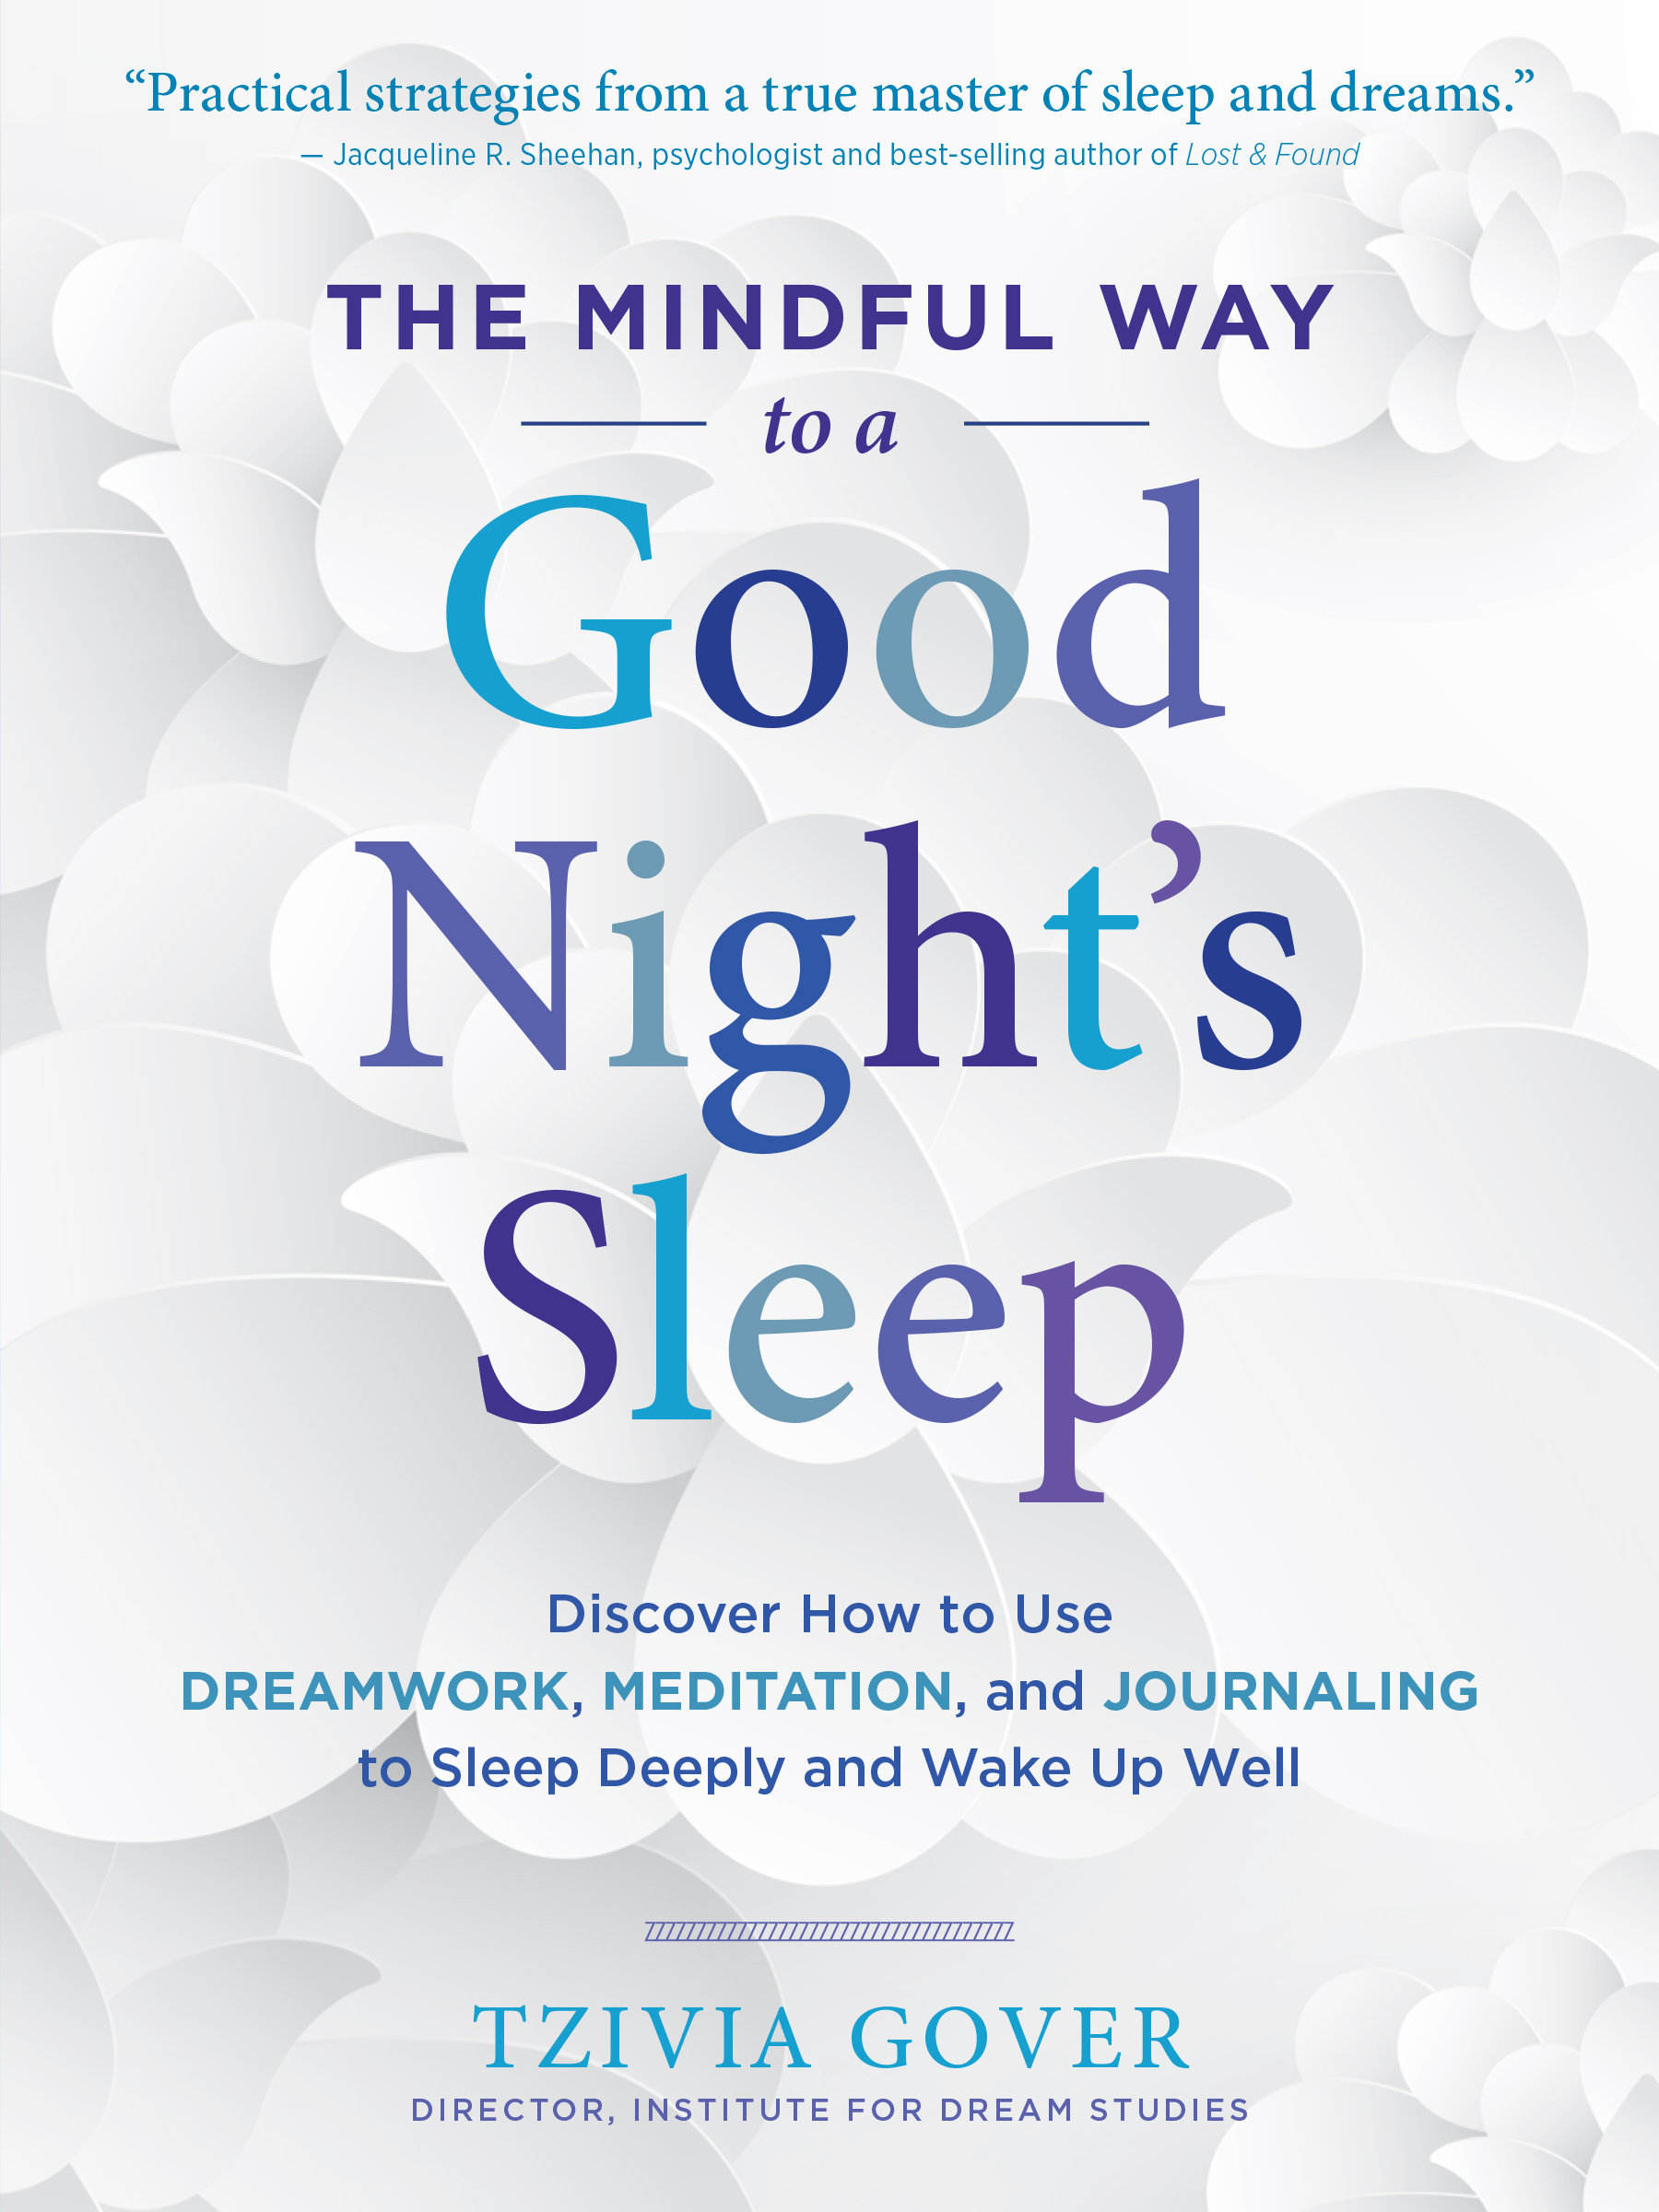 The Mindful Way to a Good Night's Sleep Discover How to Use Dreamwork, Meditation, and Journaling to Sleep Deeply and Wake Up Well - Tzivia Gover